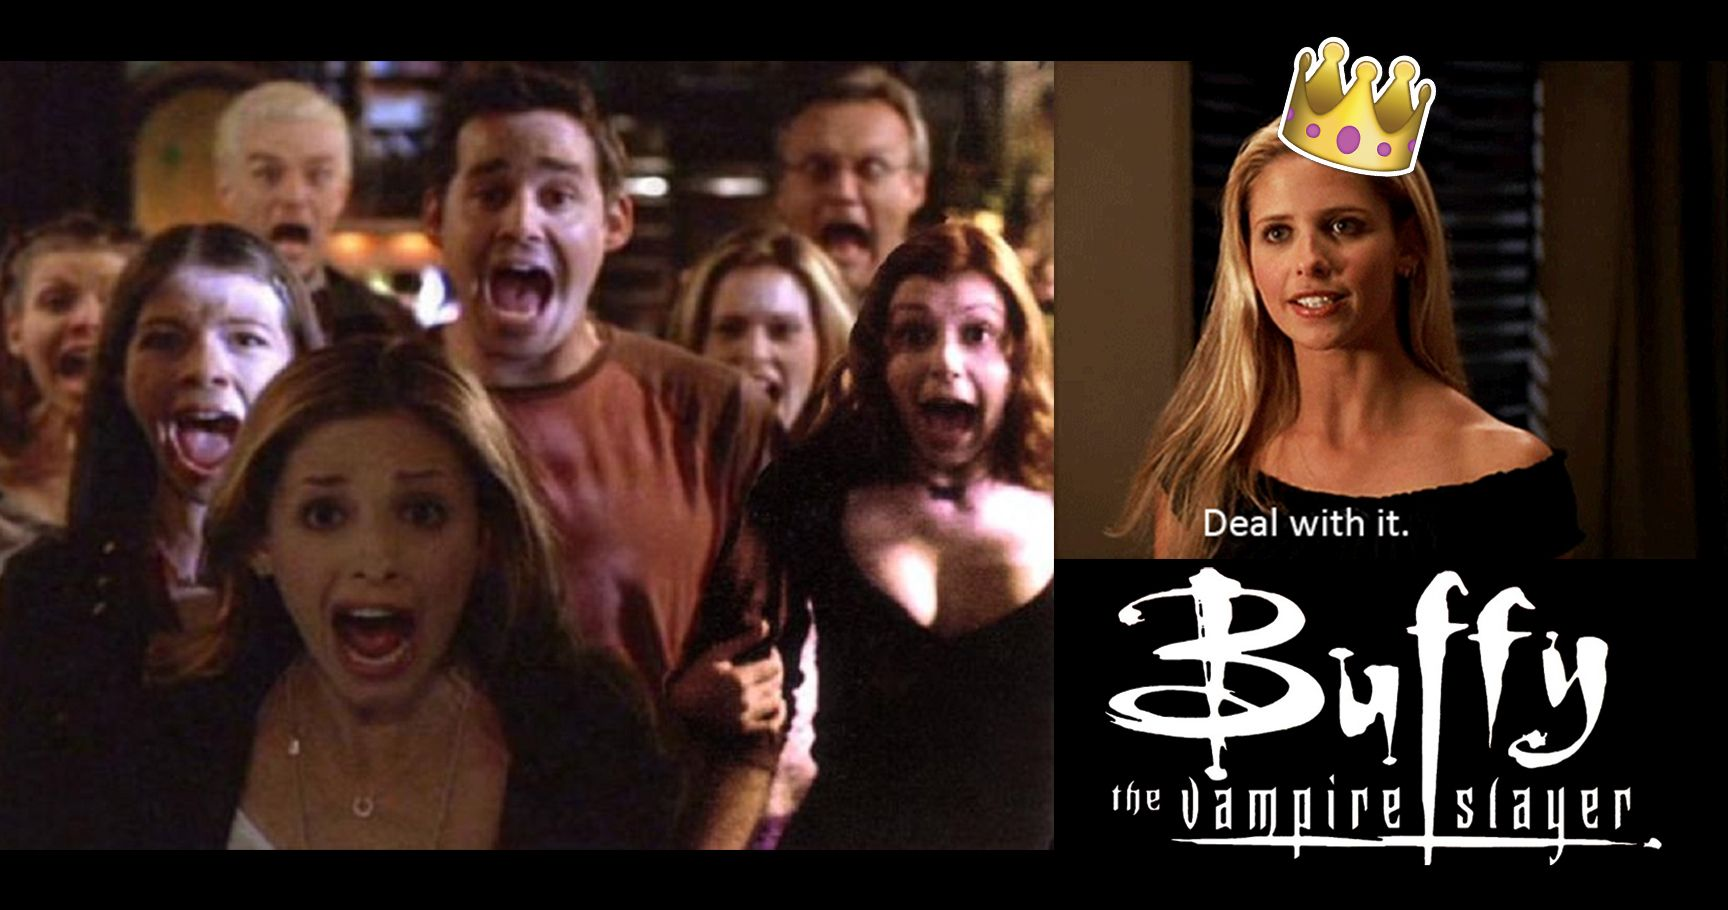 The 15 Best (Other) Episodes of Buffy the Vampire Slayer